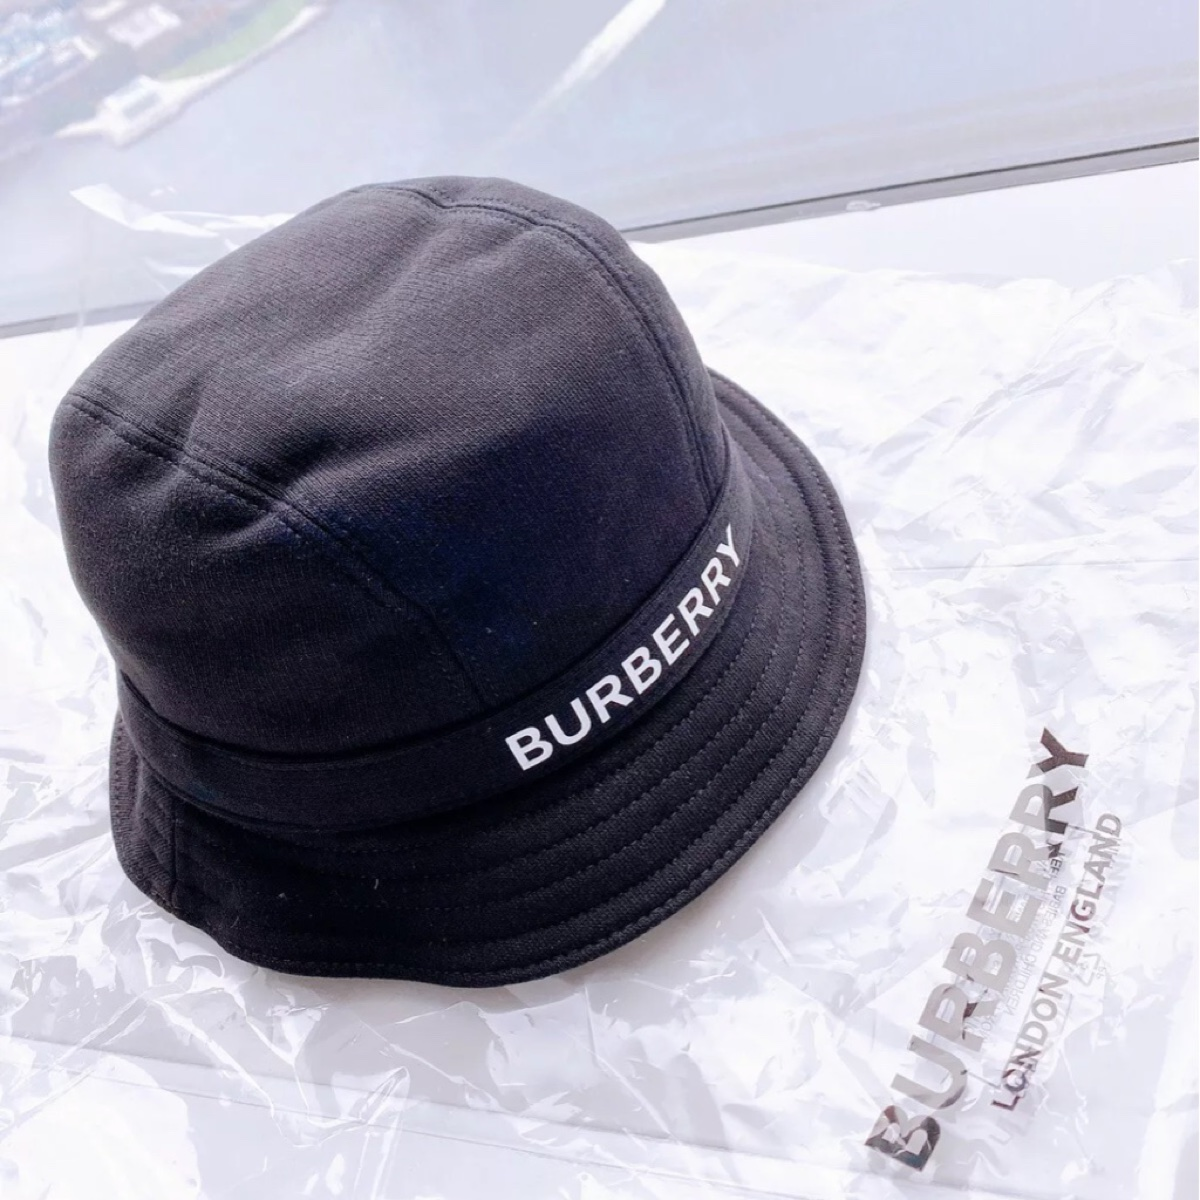 Authentic ! 2020Brand New Burberry Bucket Hat Black Fish Hat/Size M Man Or Woman